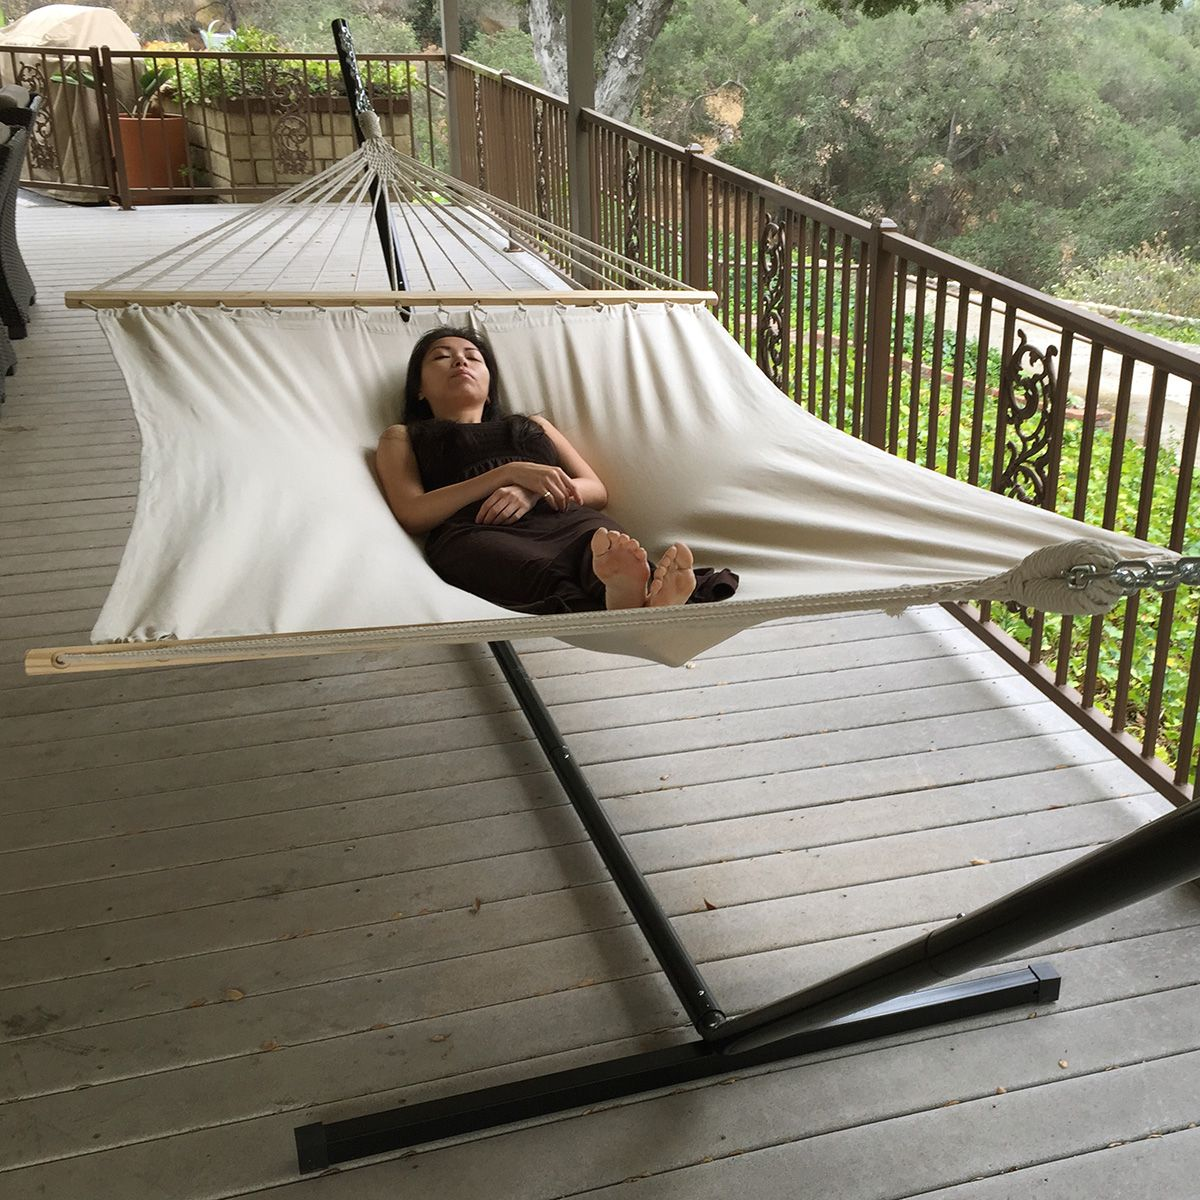 Outdoor hammock bed with cover - Explore Outdoor Swing Chair Outdoor Swings And More Related Image Outdoor Swing